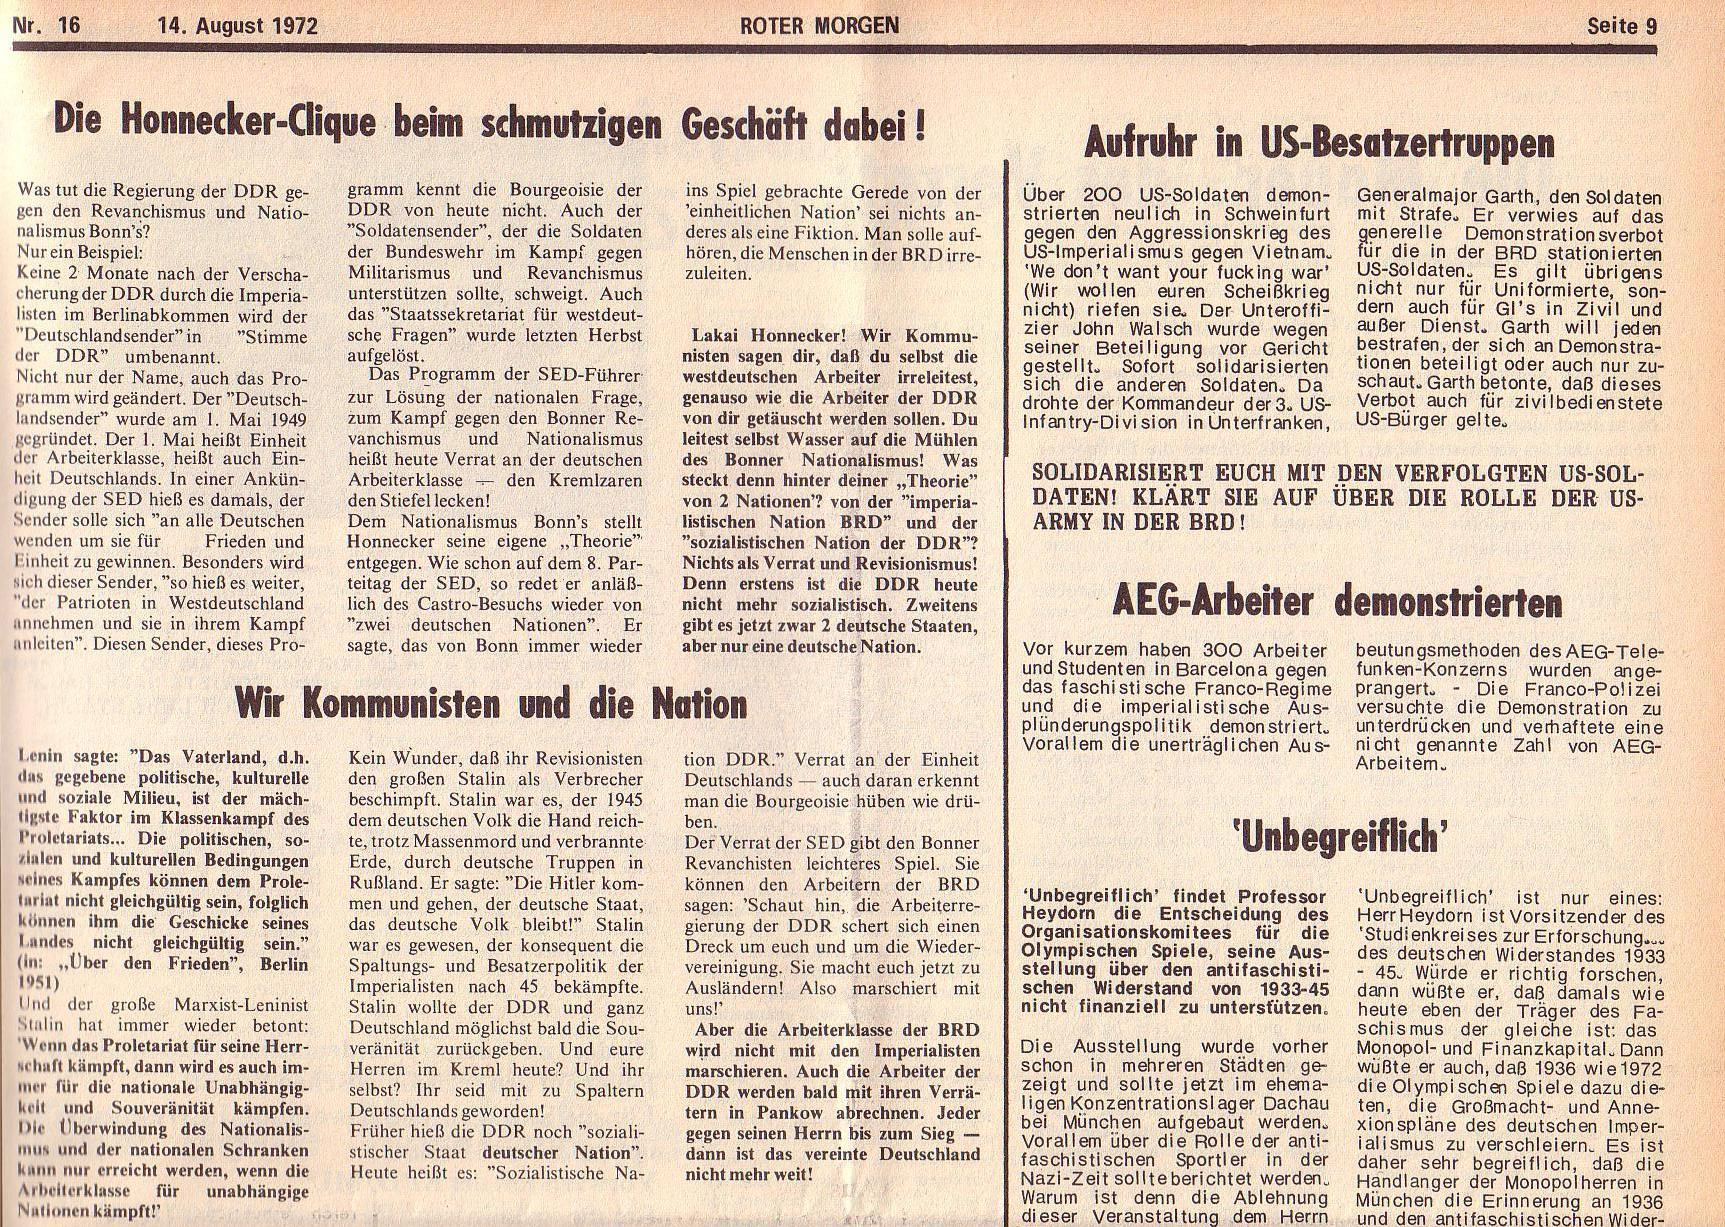 Roter Morgen, 6. Jg., 14. August 1972, Nr. 16, Seite 9a